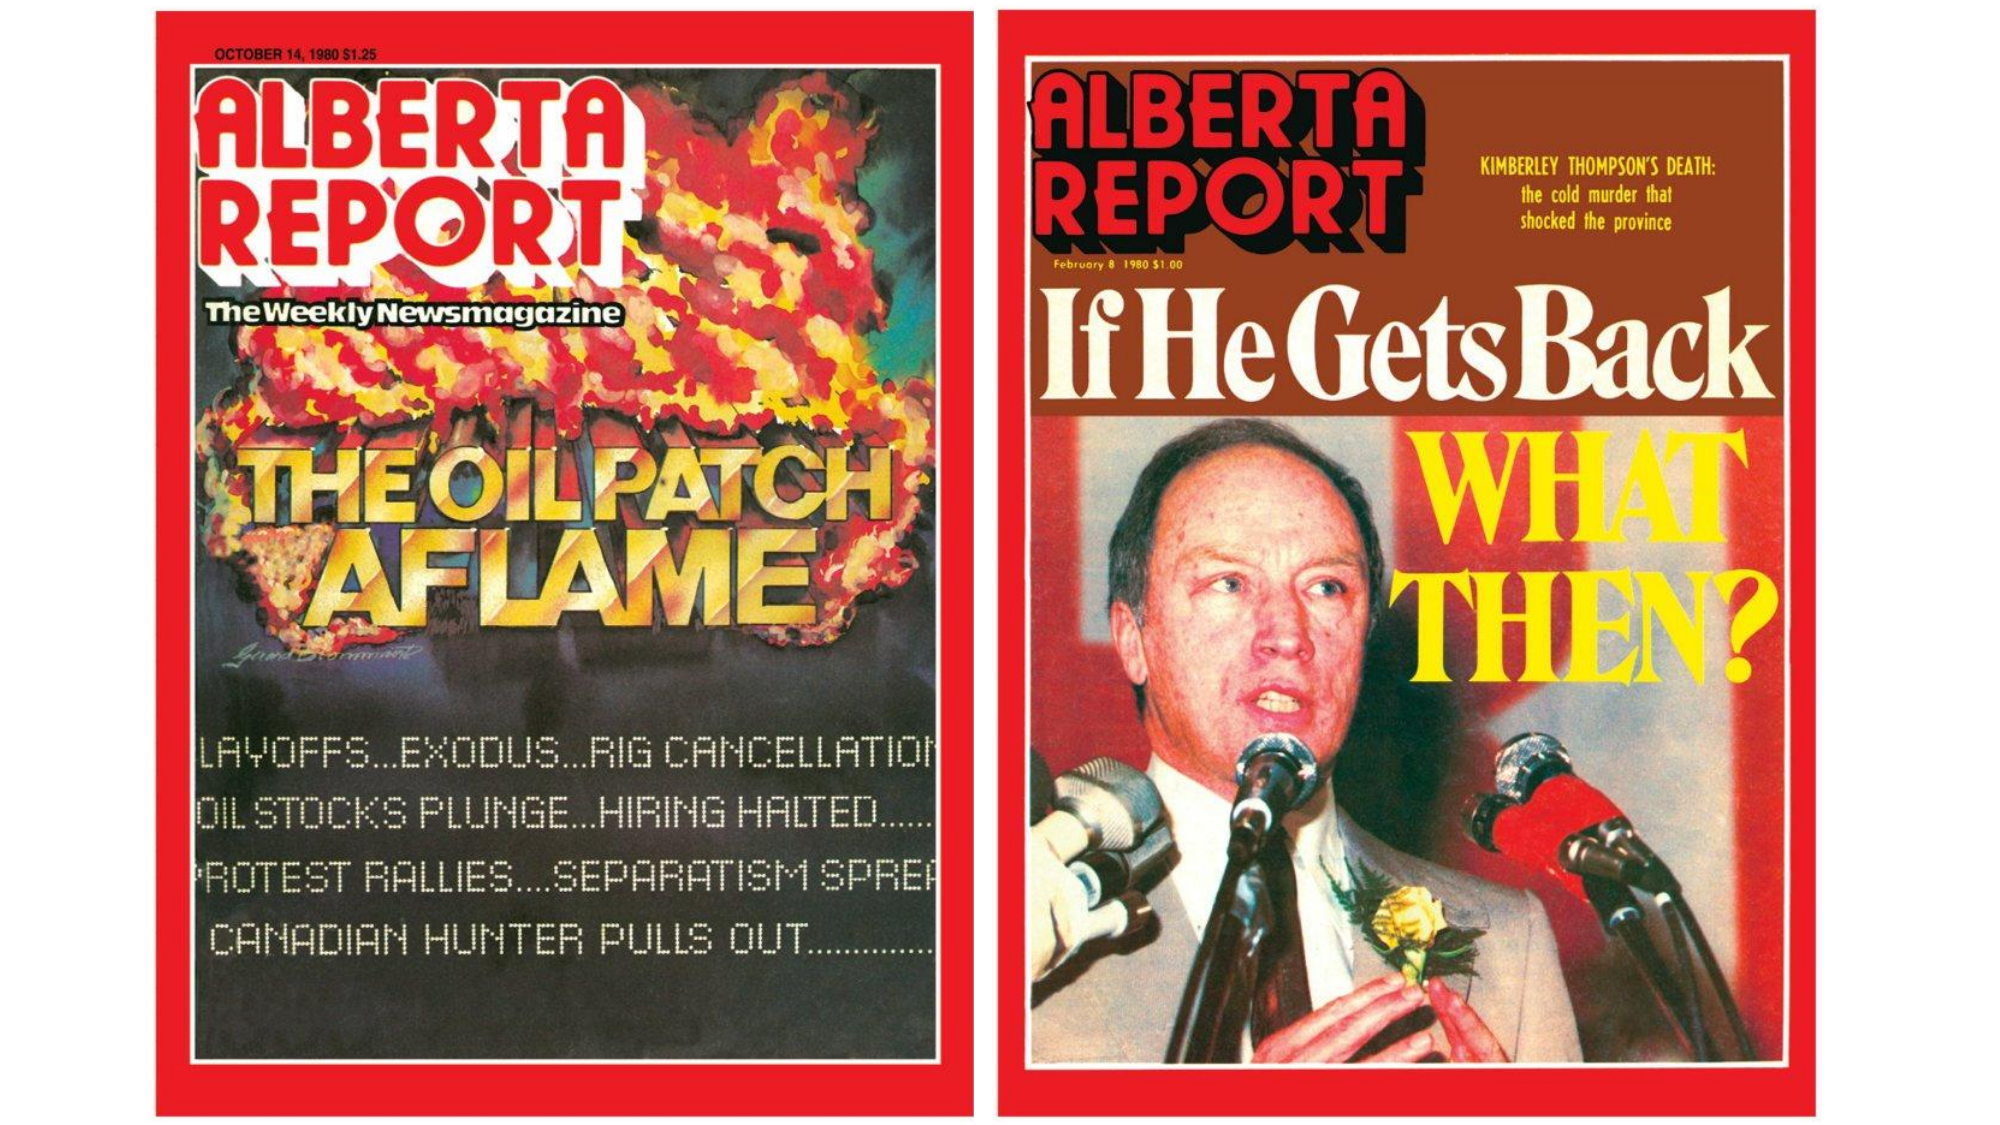 The Alberta Report frequently adorned its covers with dramatic headlines and explosive imagery while also adopting the red border most frequently associated with Time magazine. (Alberta Report)